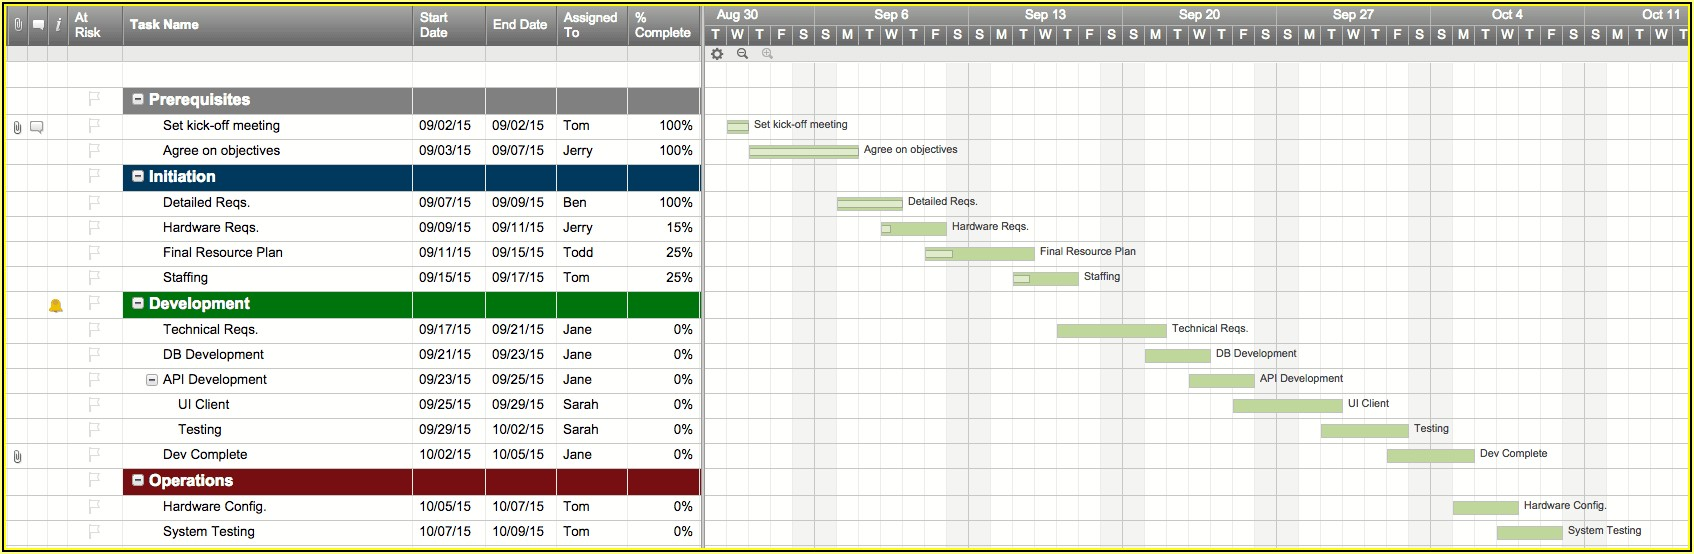 Project Action Plan Template Excel